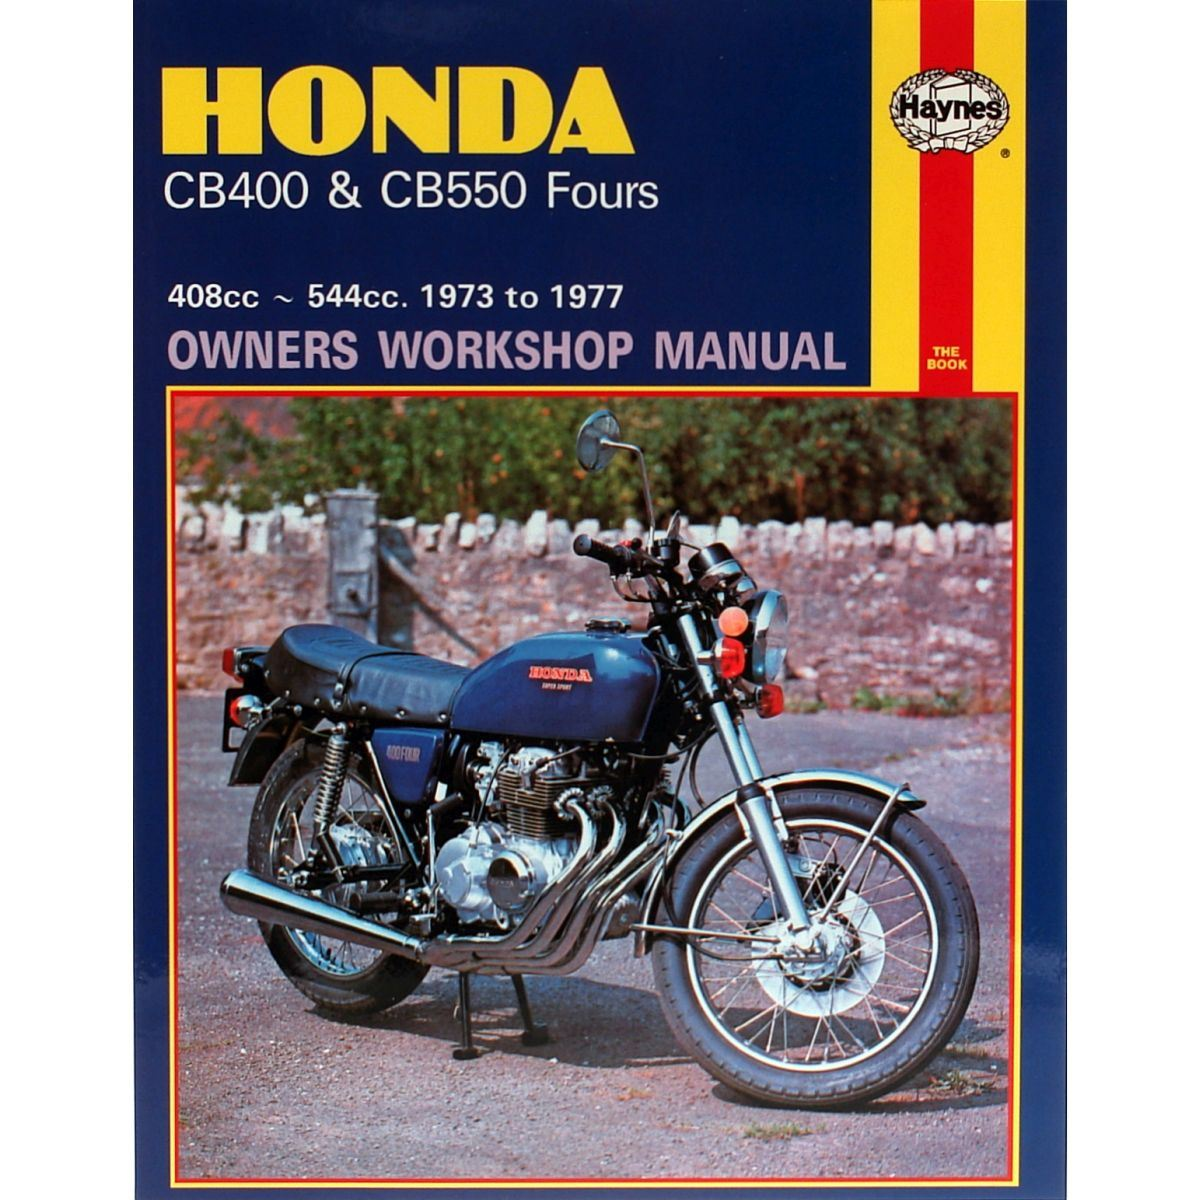 honda 400 four cb550 haynes owners manual repair book 1973 ebay rh ebay co uk Honda CB-1 Honda CB400F Craigslist